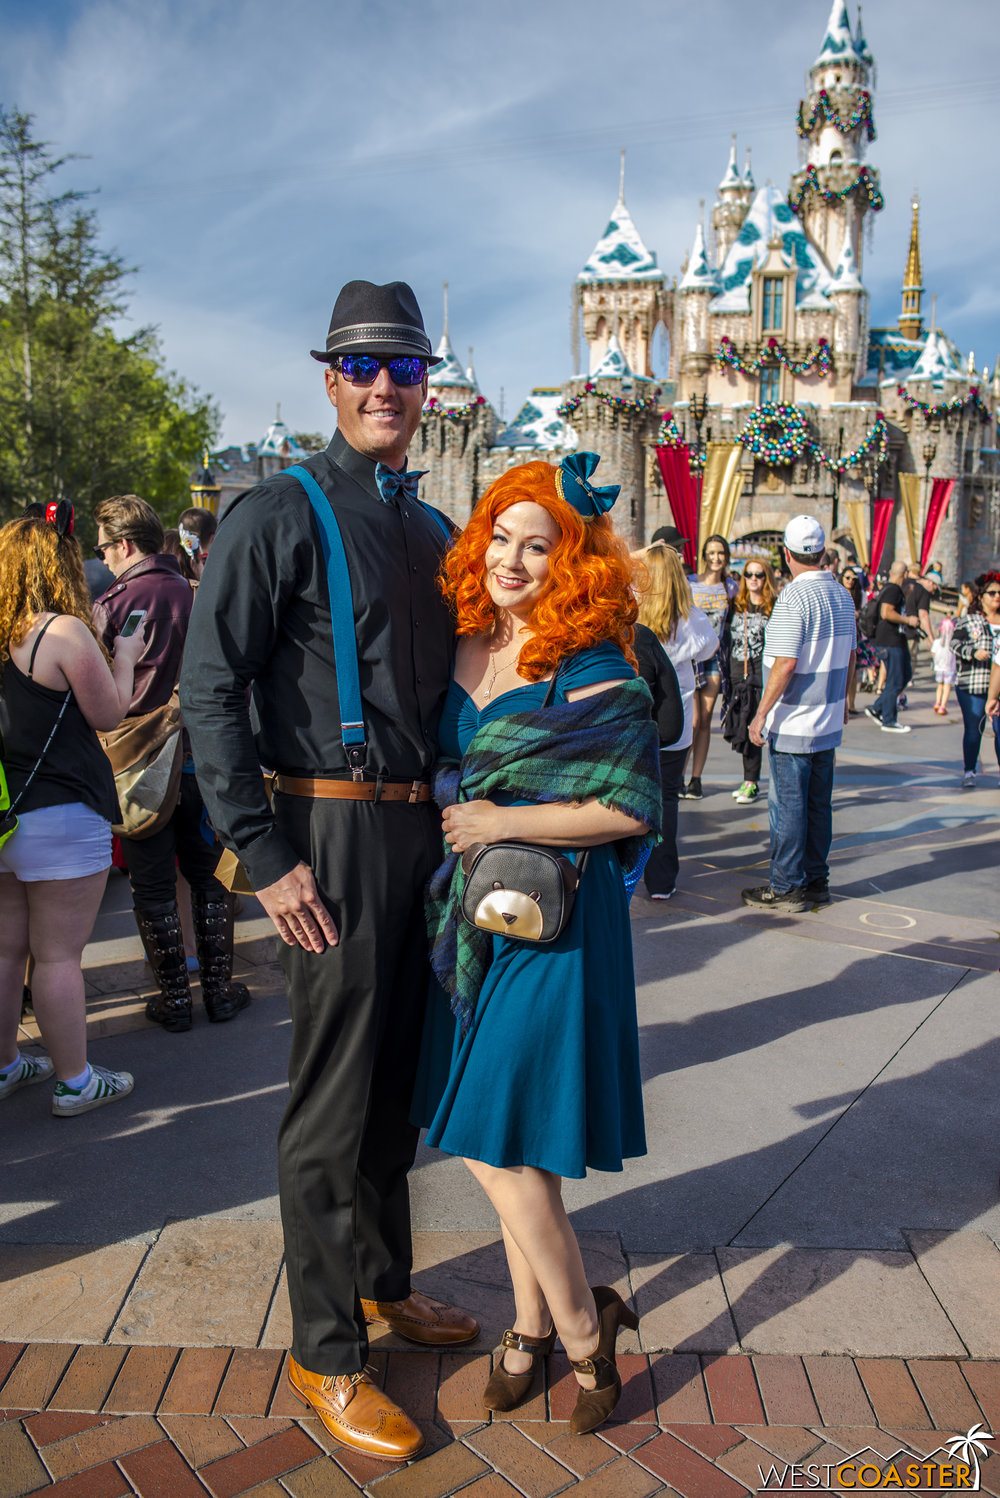 Over in front of Sleeping Beauty Castle, Merida poses with her date.